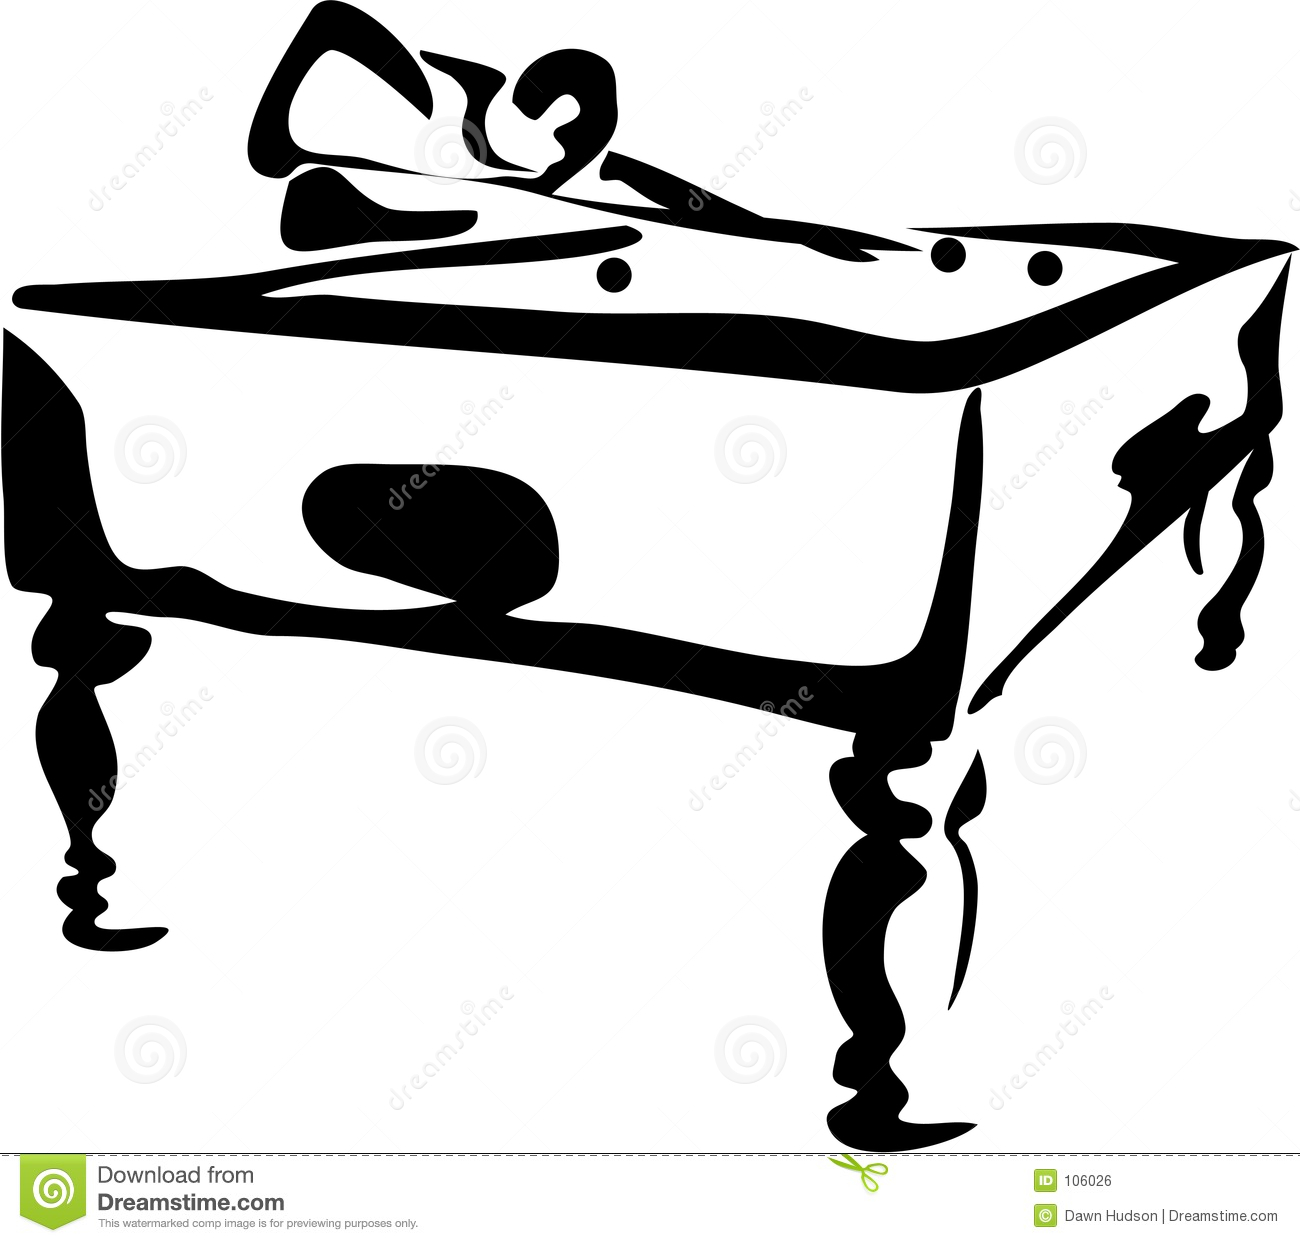 Billiards clipart black and white picture black and white library Pool Table Clipart | Free download best Pool Table Clipart on ... picture black and white library